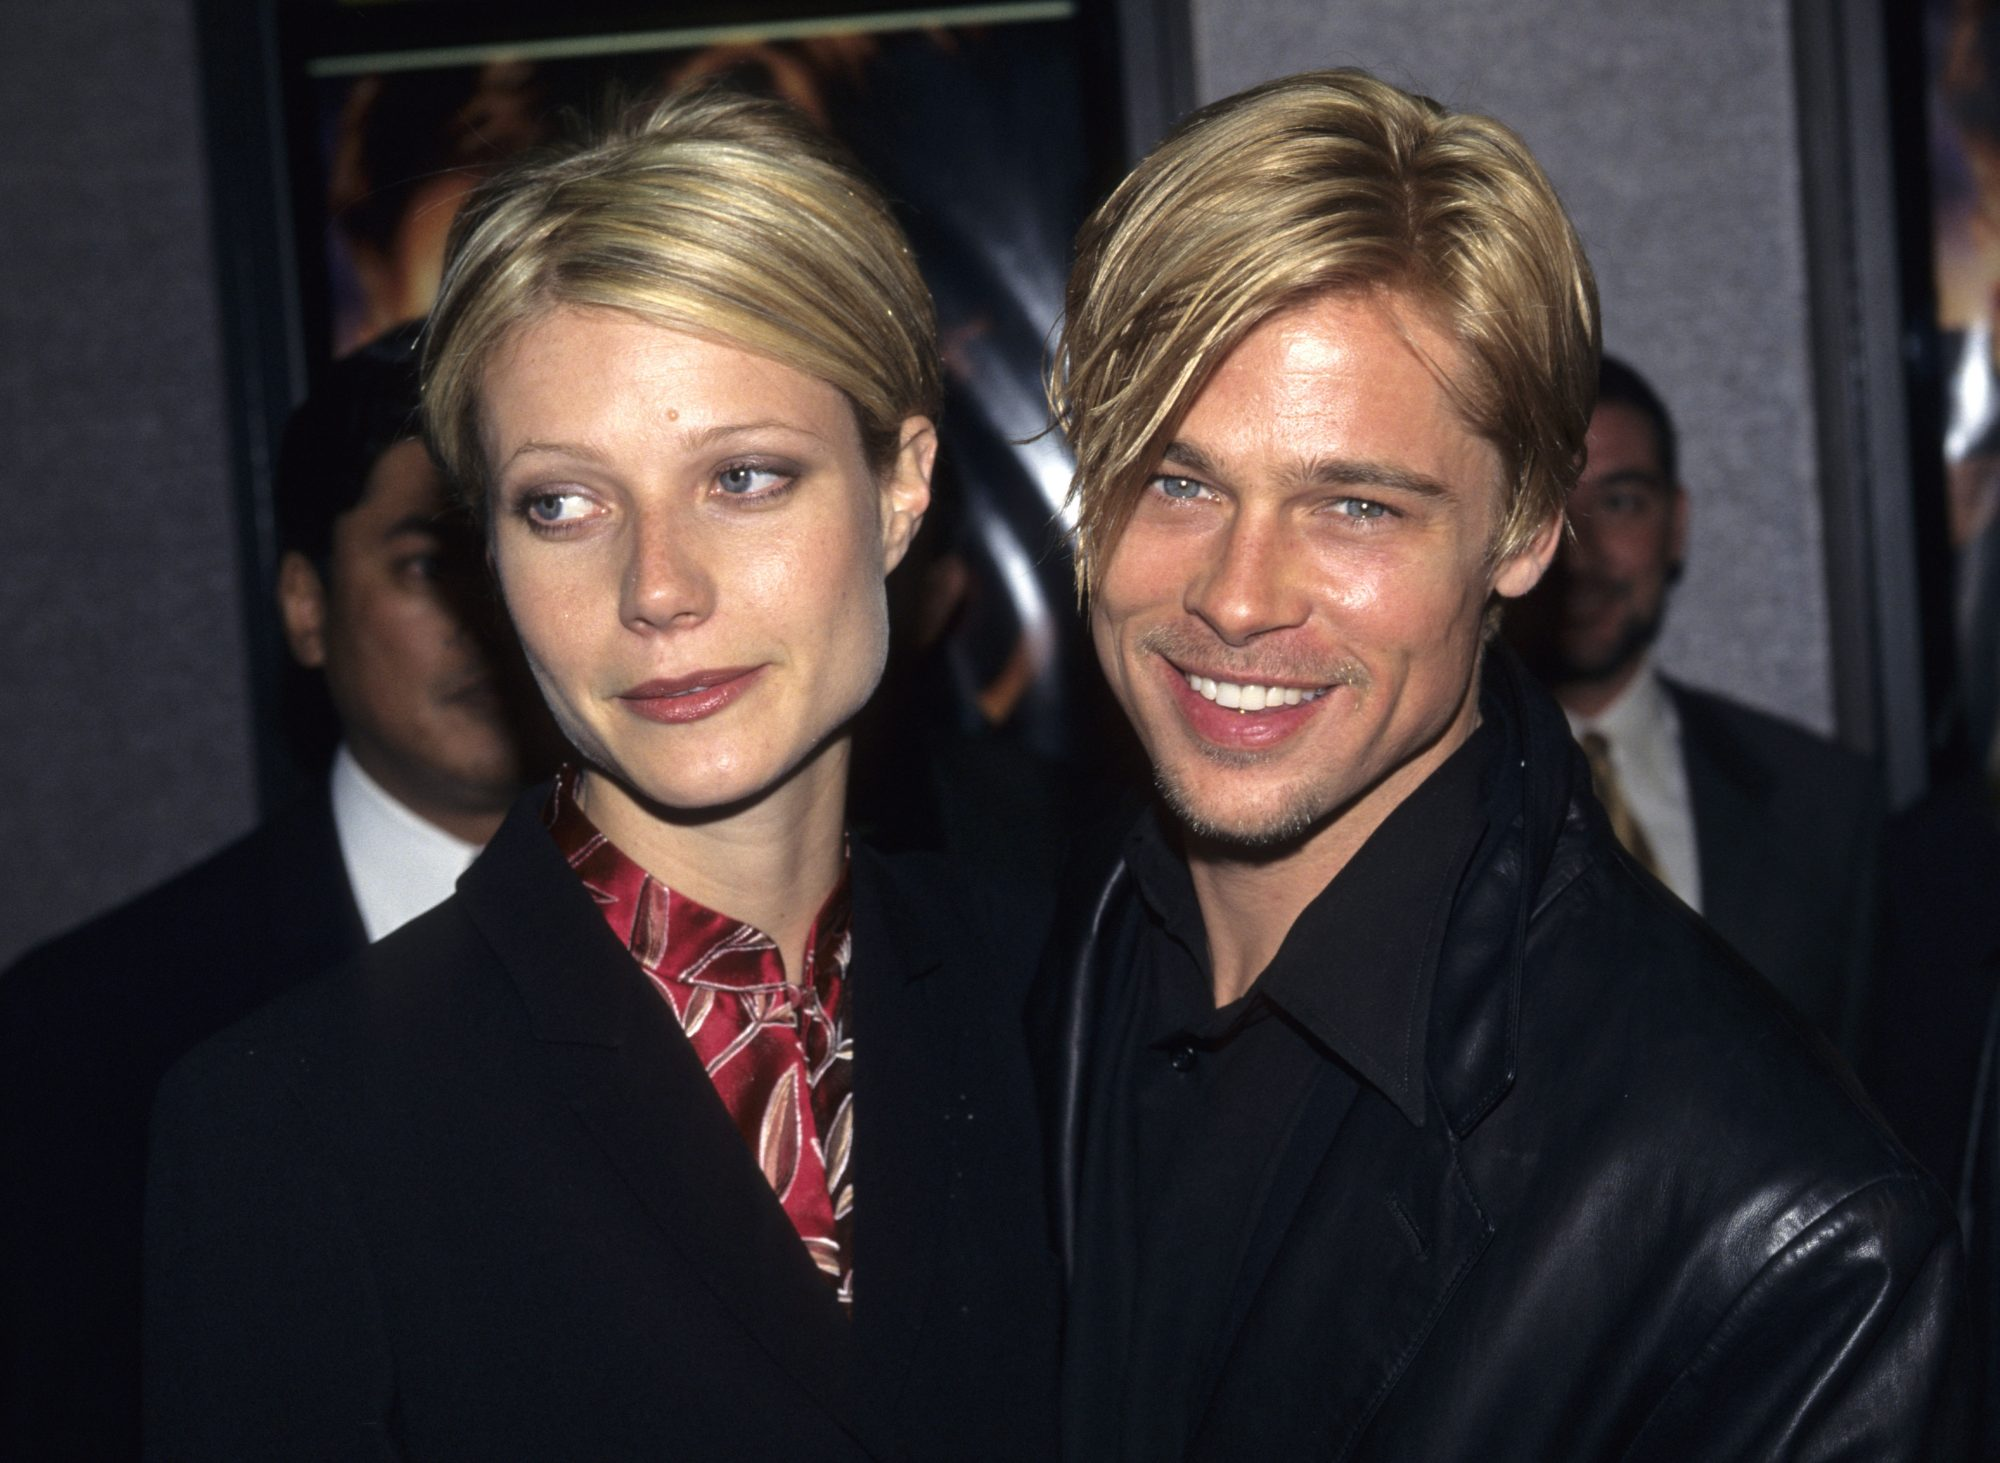 Gwyneth Paltrow Almost Didn't Take This Huge Role Because of Her Breakup with Brad Pitt